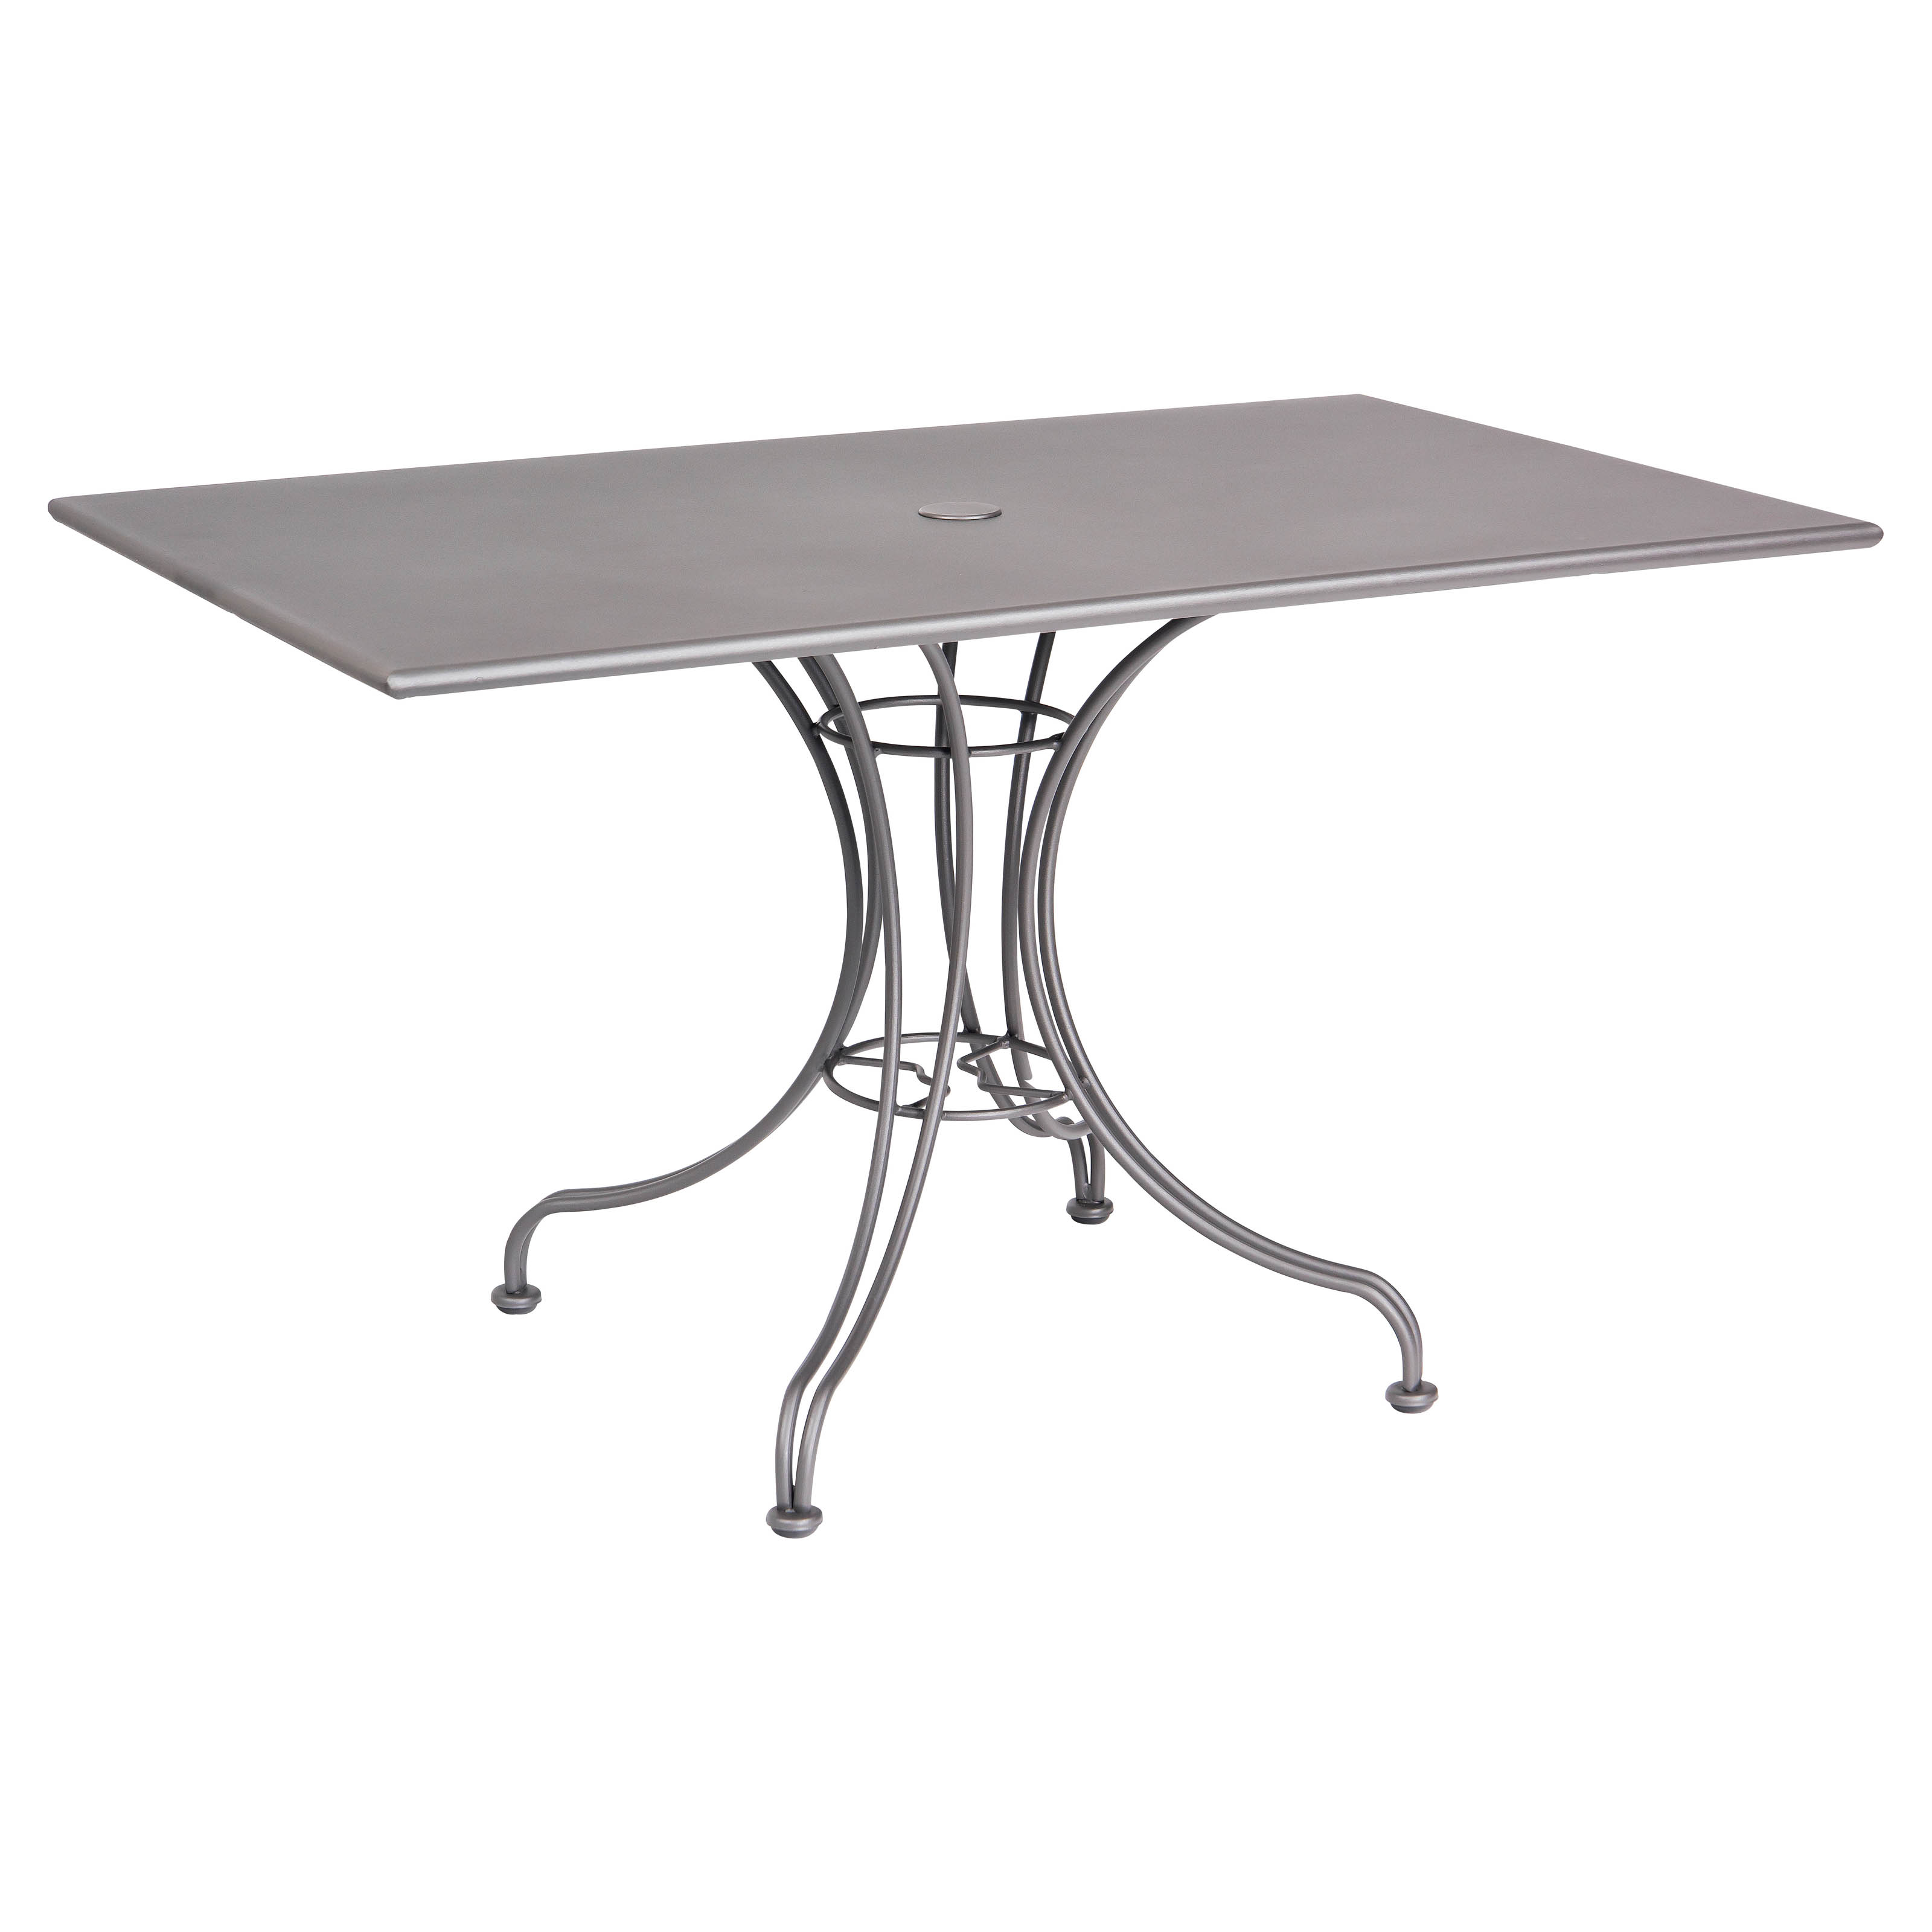 Woodard Solid Top 48 X 30 Rectangular Patio Dining Table With Umbrella Hole